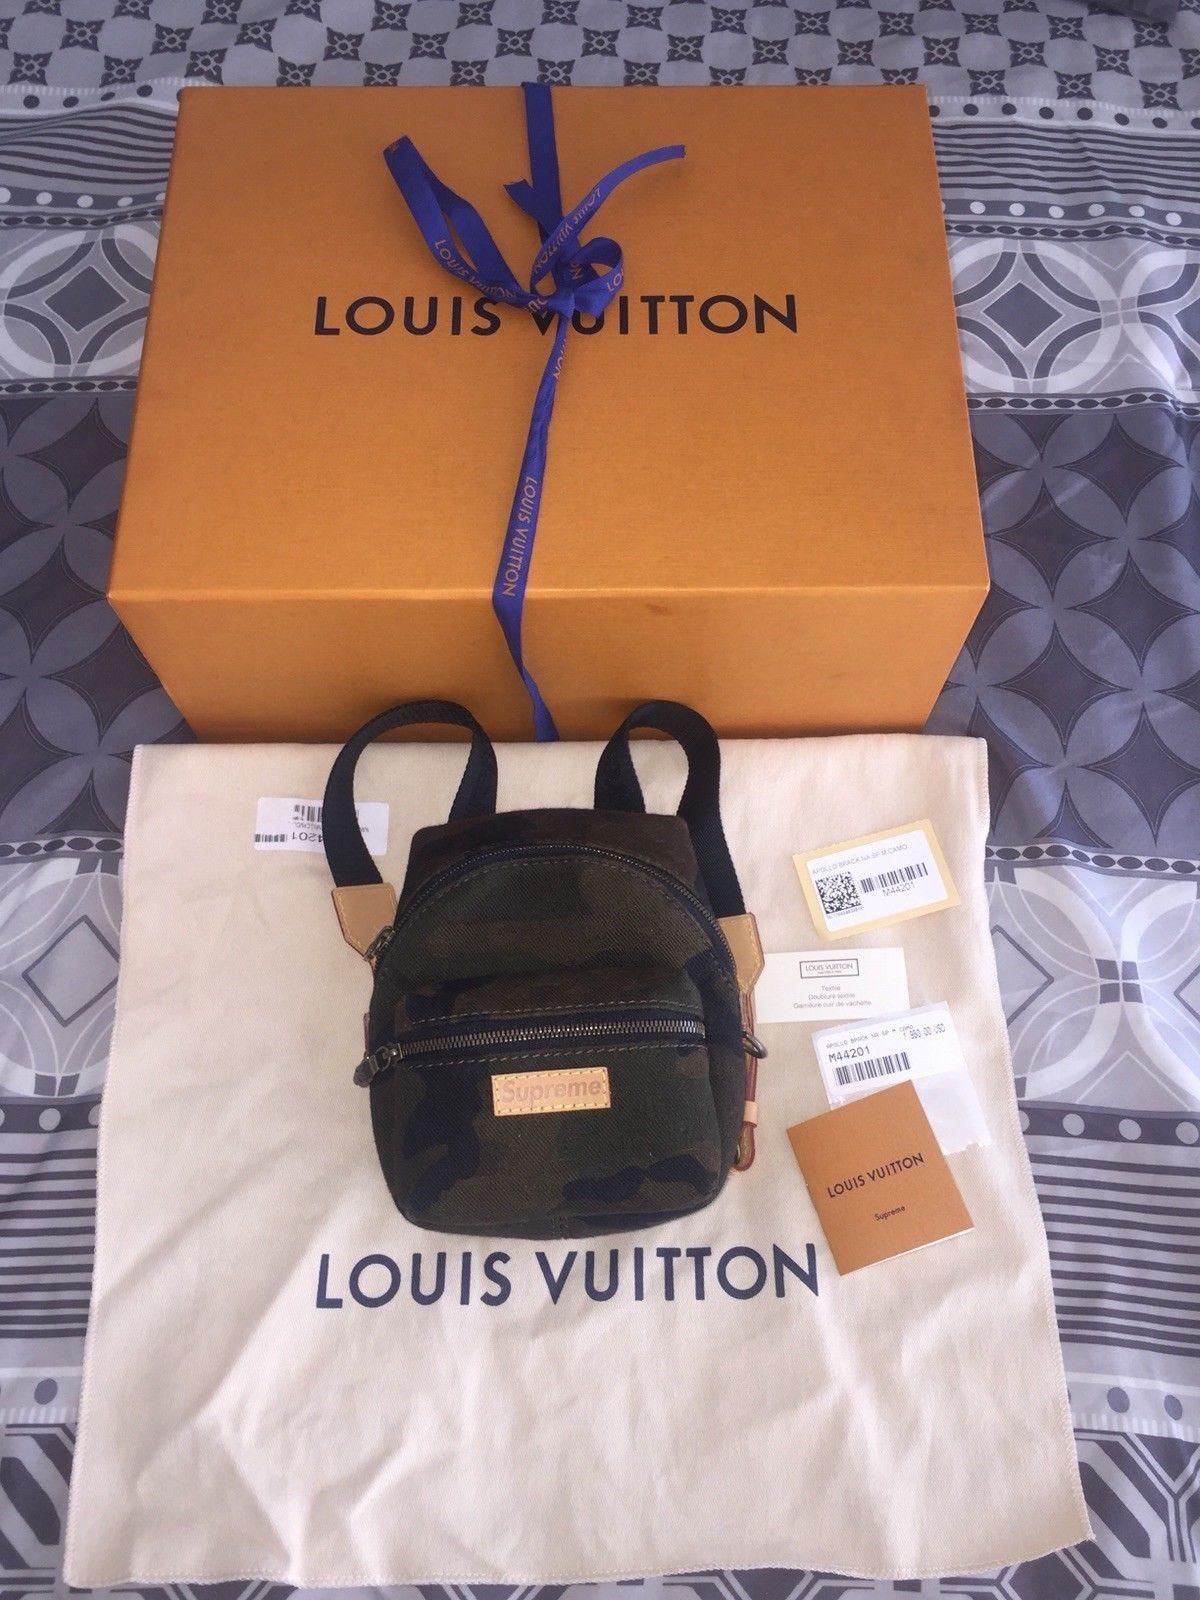 LOUIS VUITTON SUPREME Apollo Camo Nano Backpack Mini Book Bag Monogram M44201 2